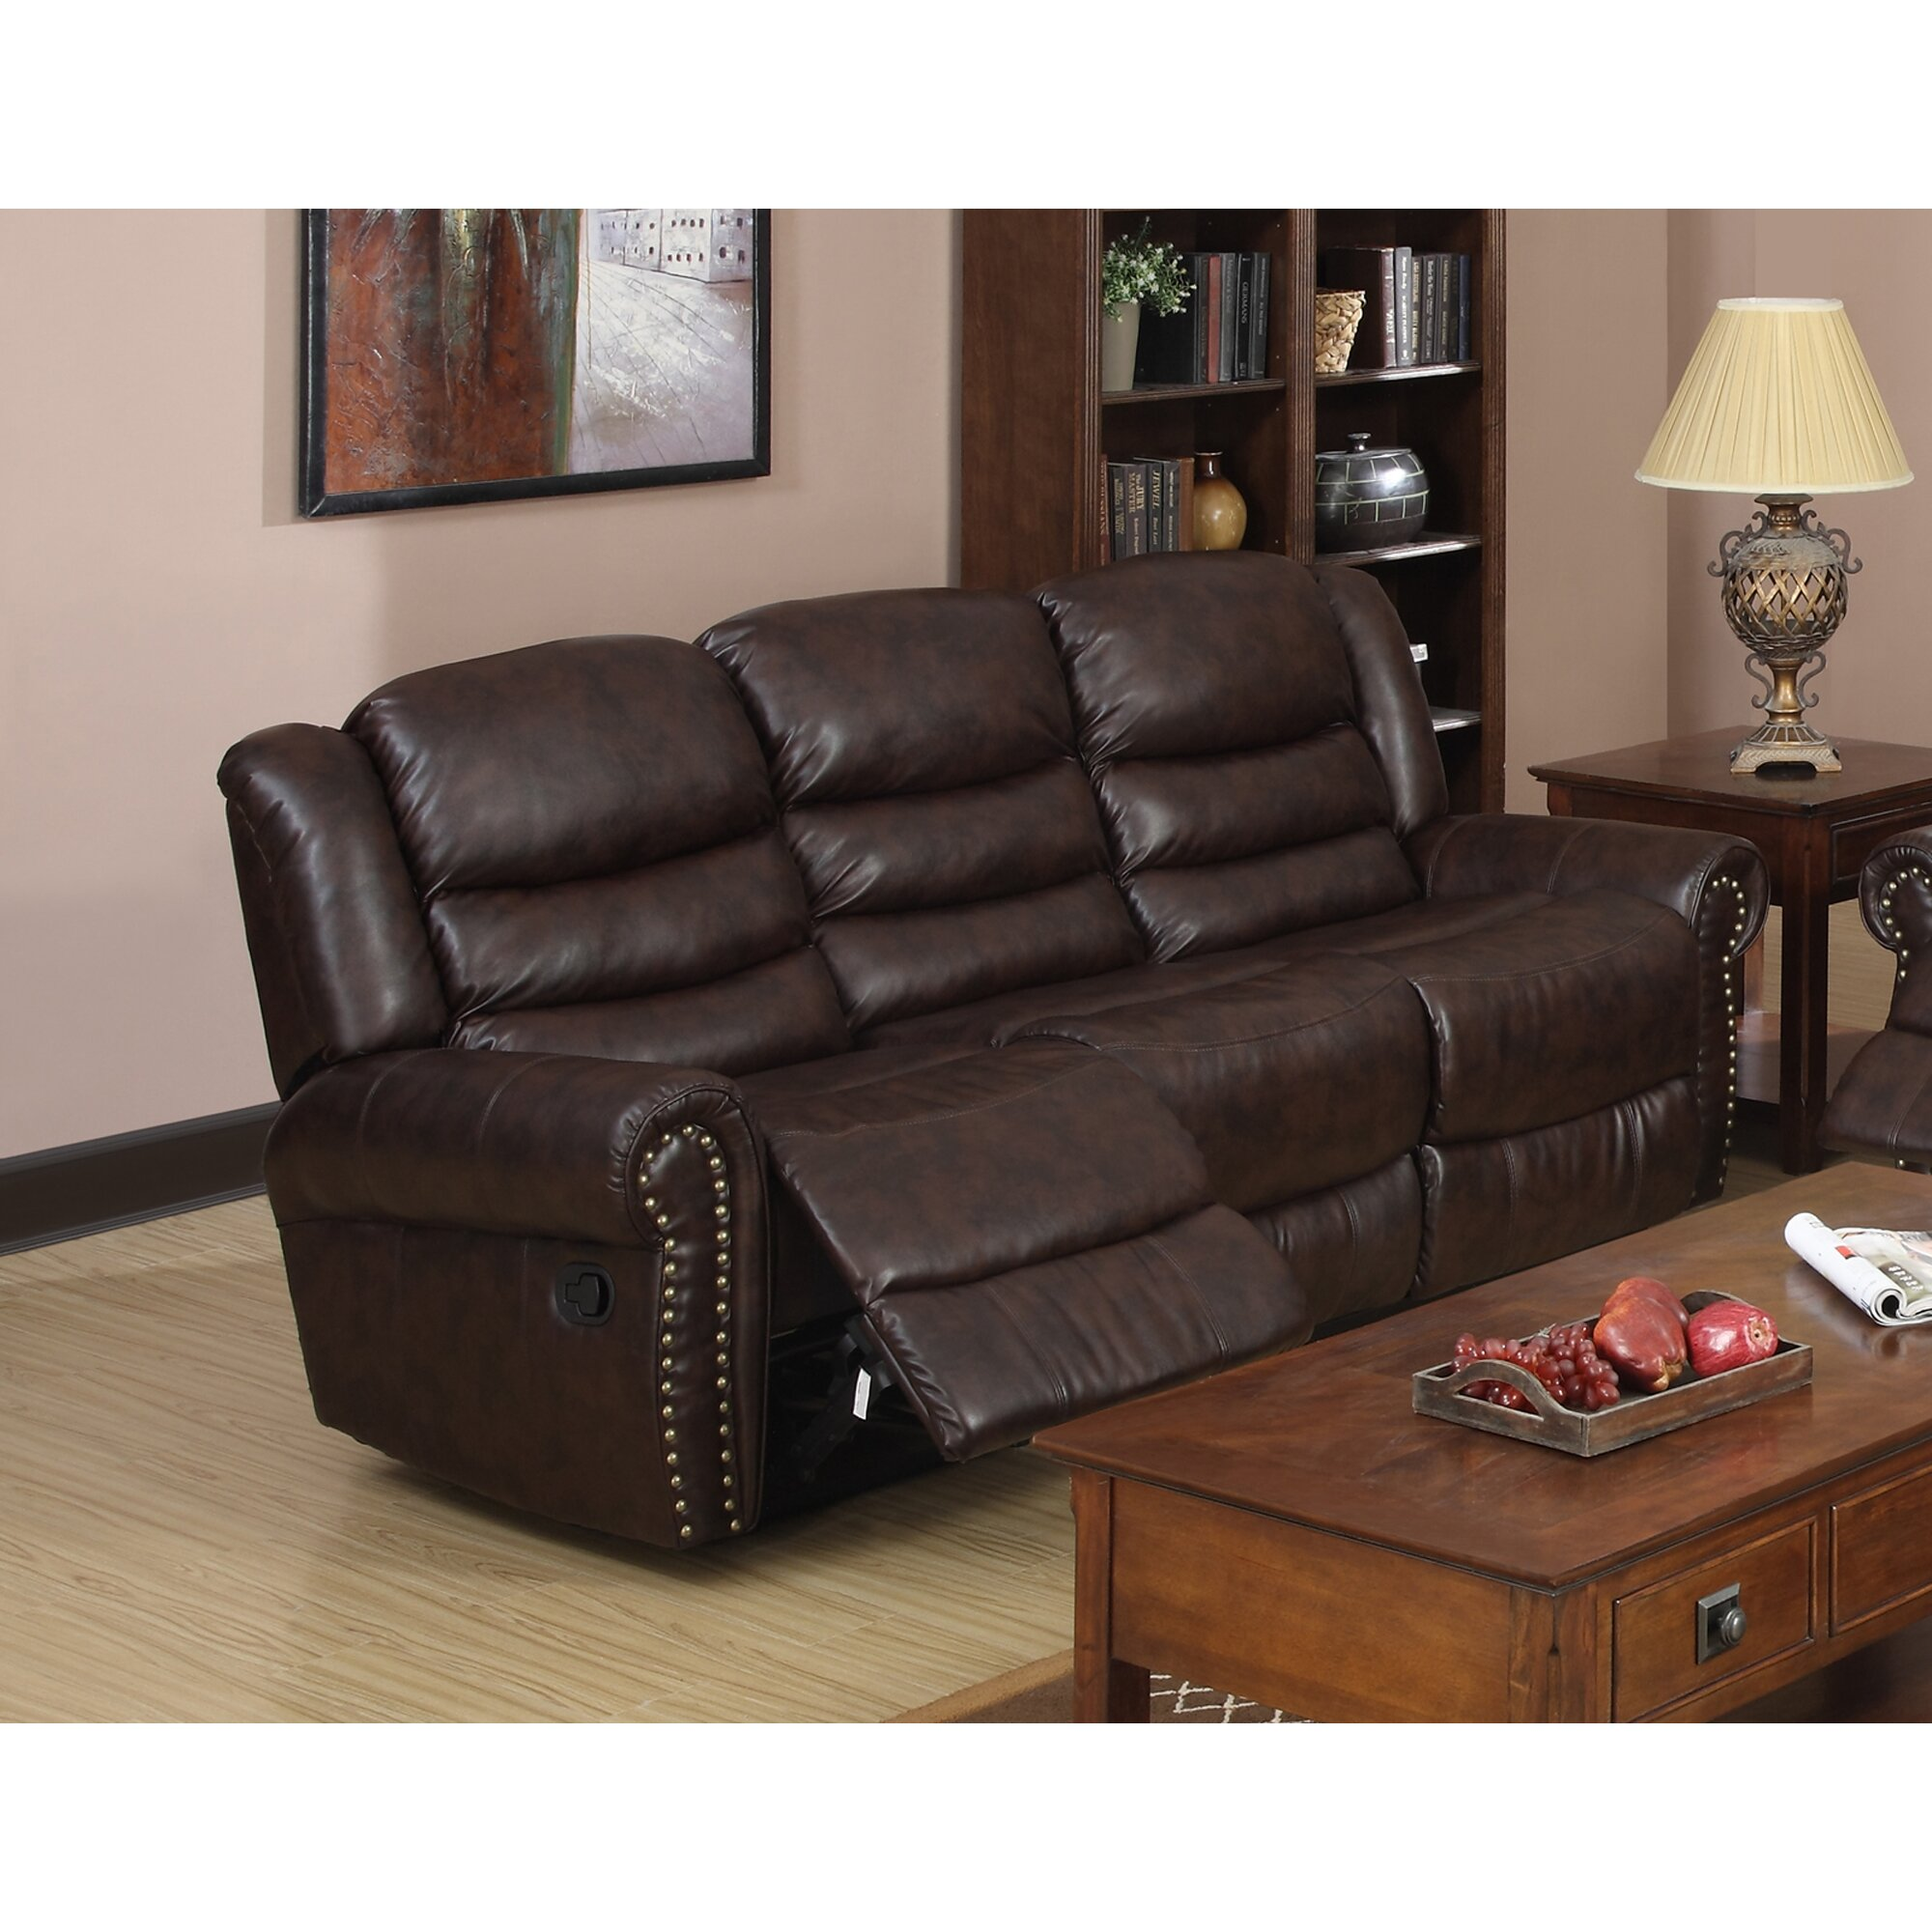 Beverly Fine Furniture Wausau Reclining Sofa Wayfair